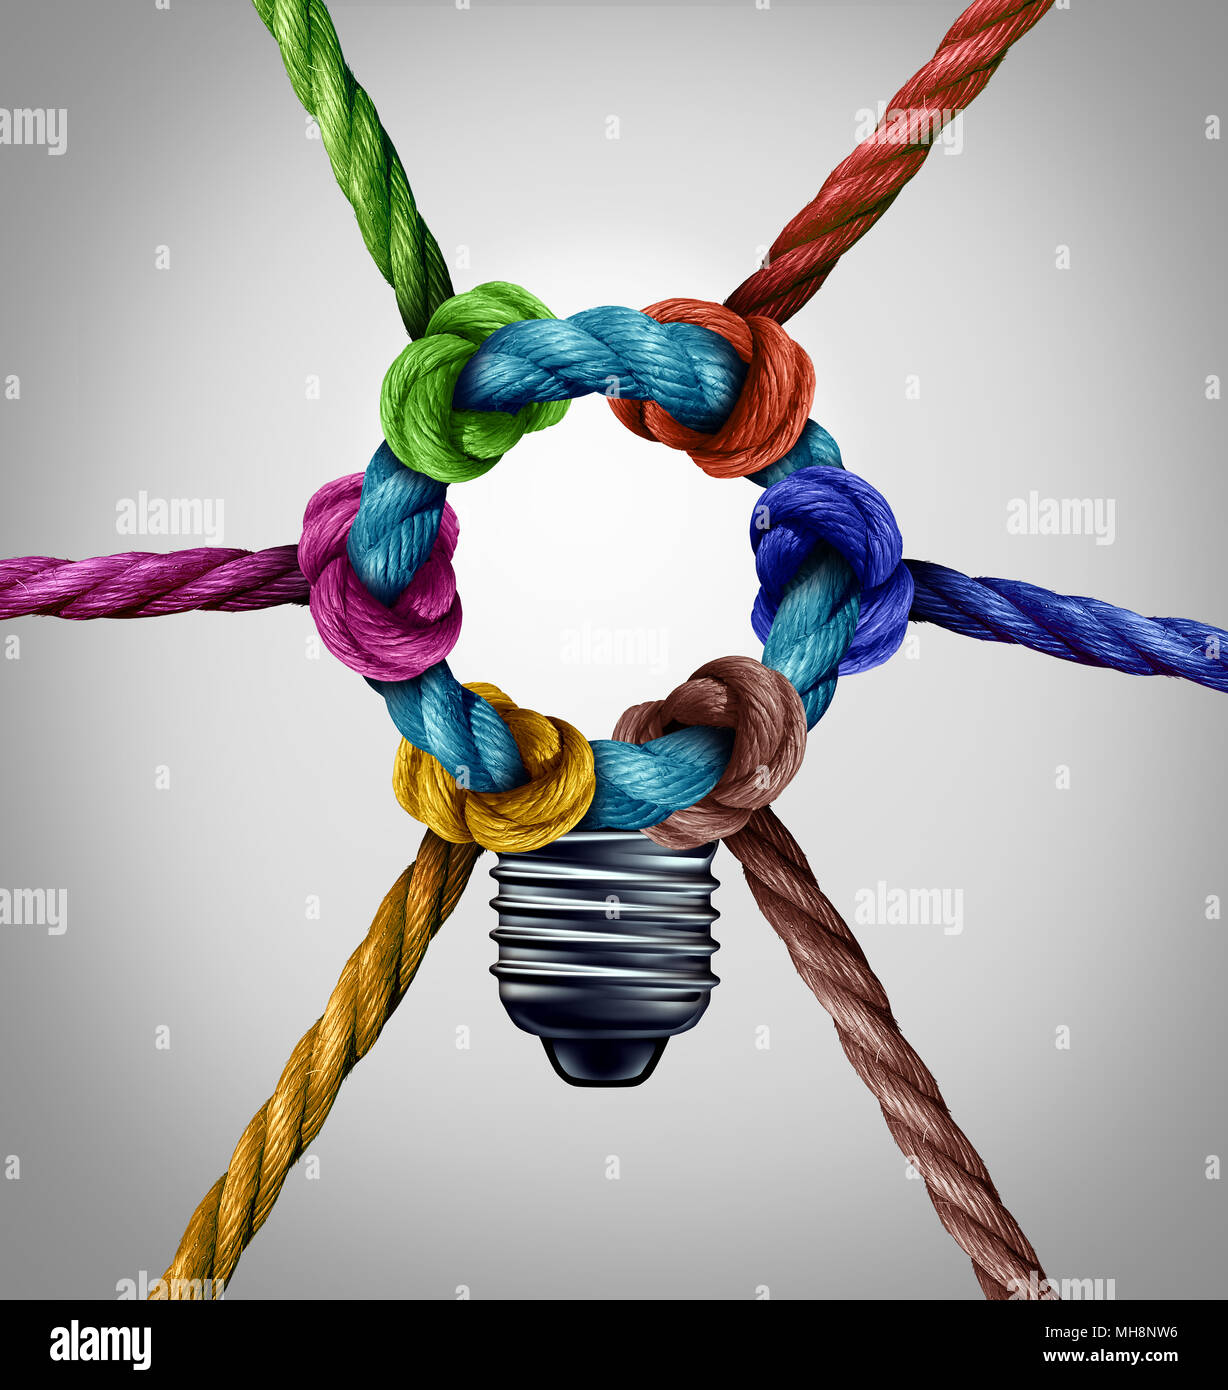 Central creativity concept as a group inspiration connection idea as diverse ropes tied together as a team symbol with 3D illustration elements. - Stock Image